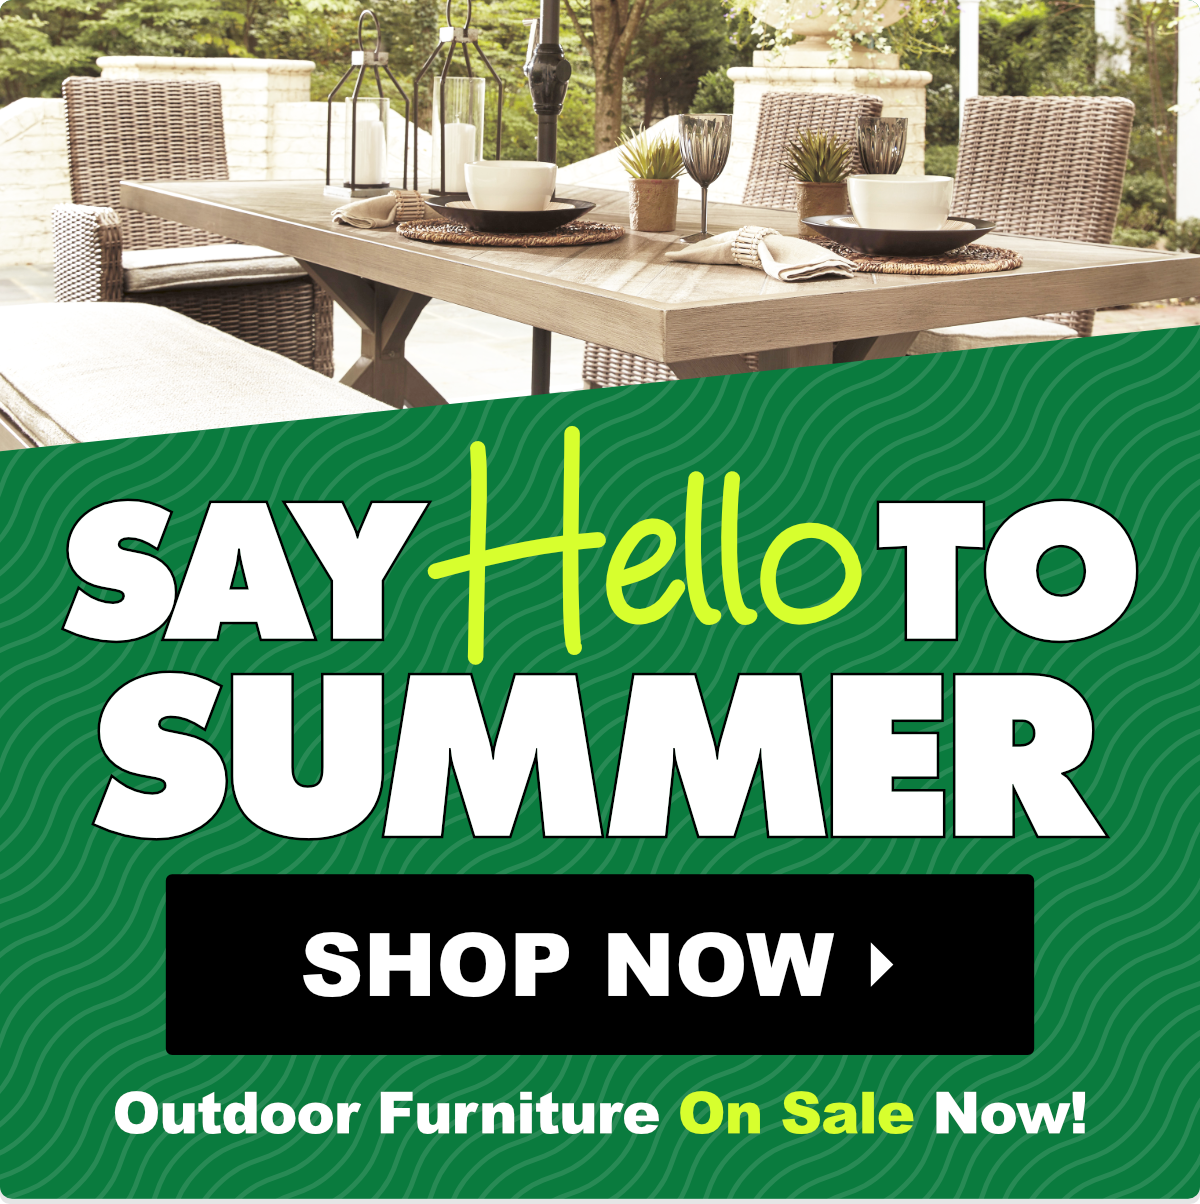 Outdoor Furniture On Sale in Wichita